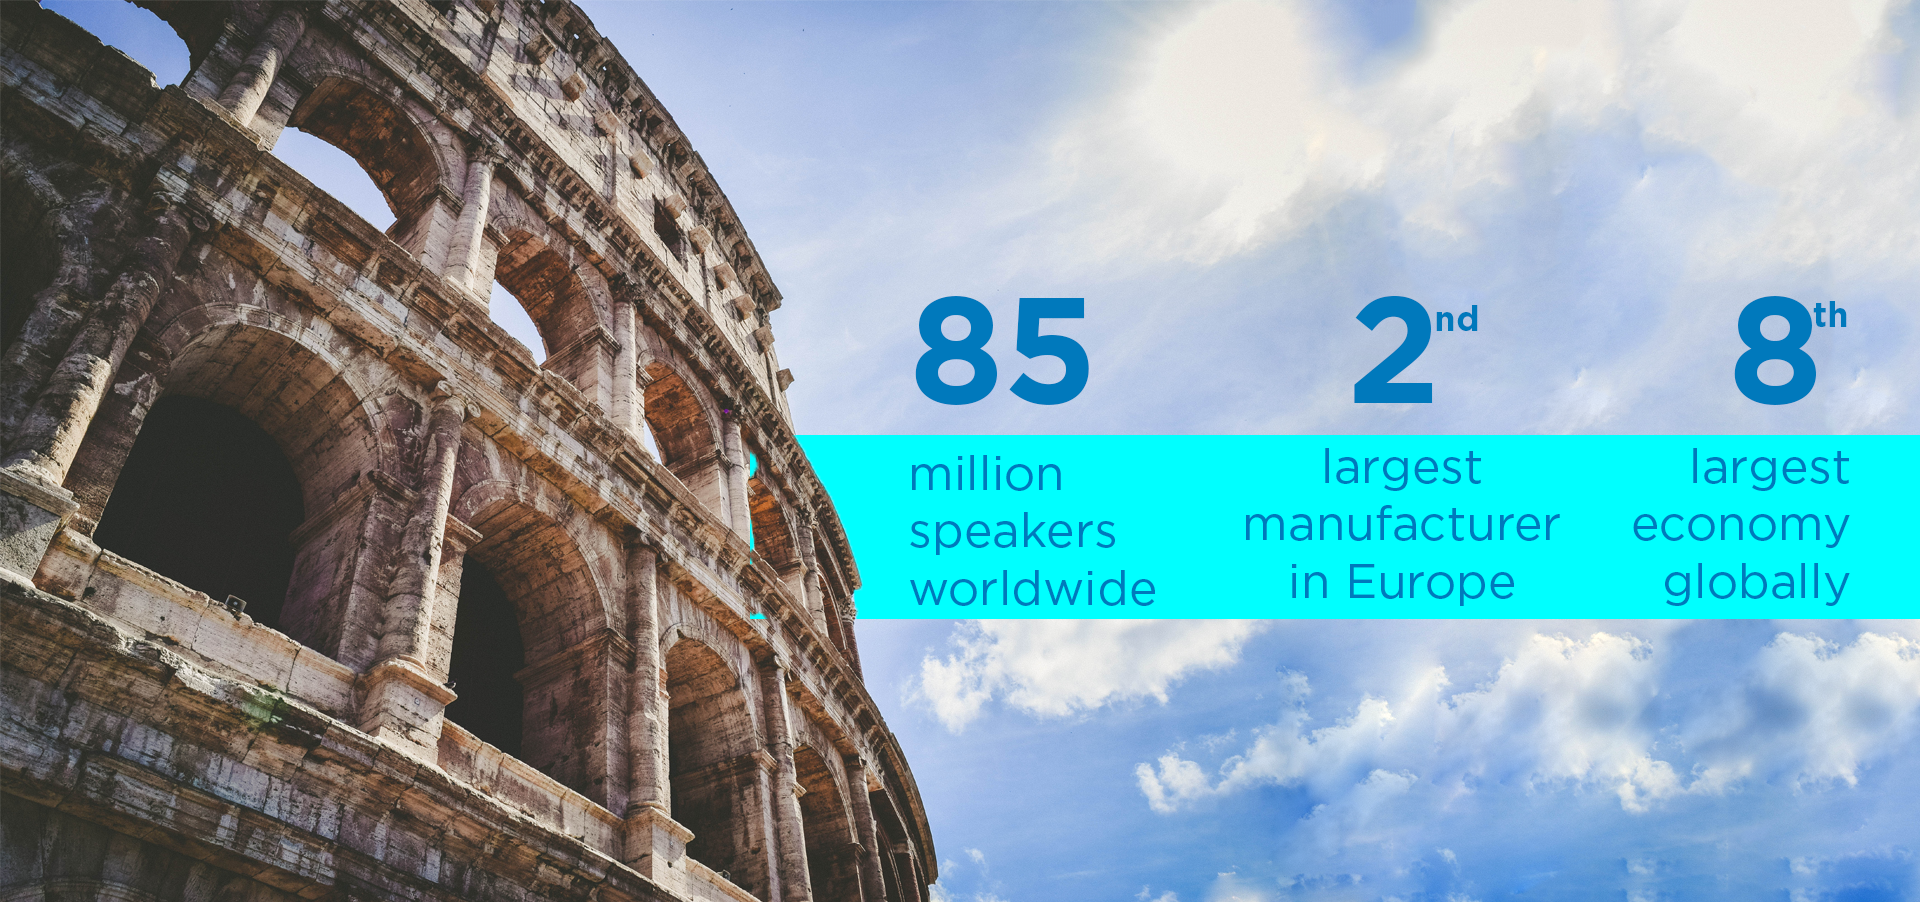 Stats about the Italian language which highlight the need for Italian translation services